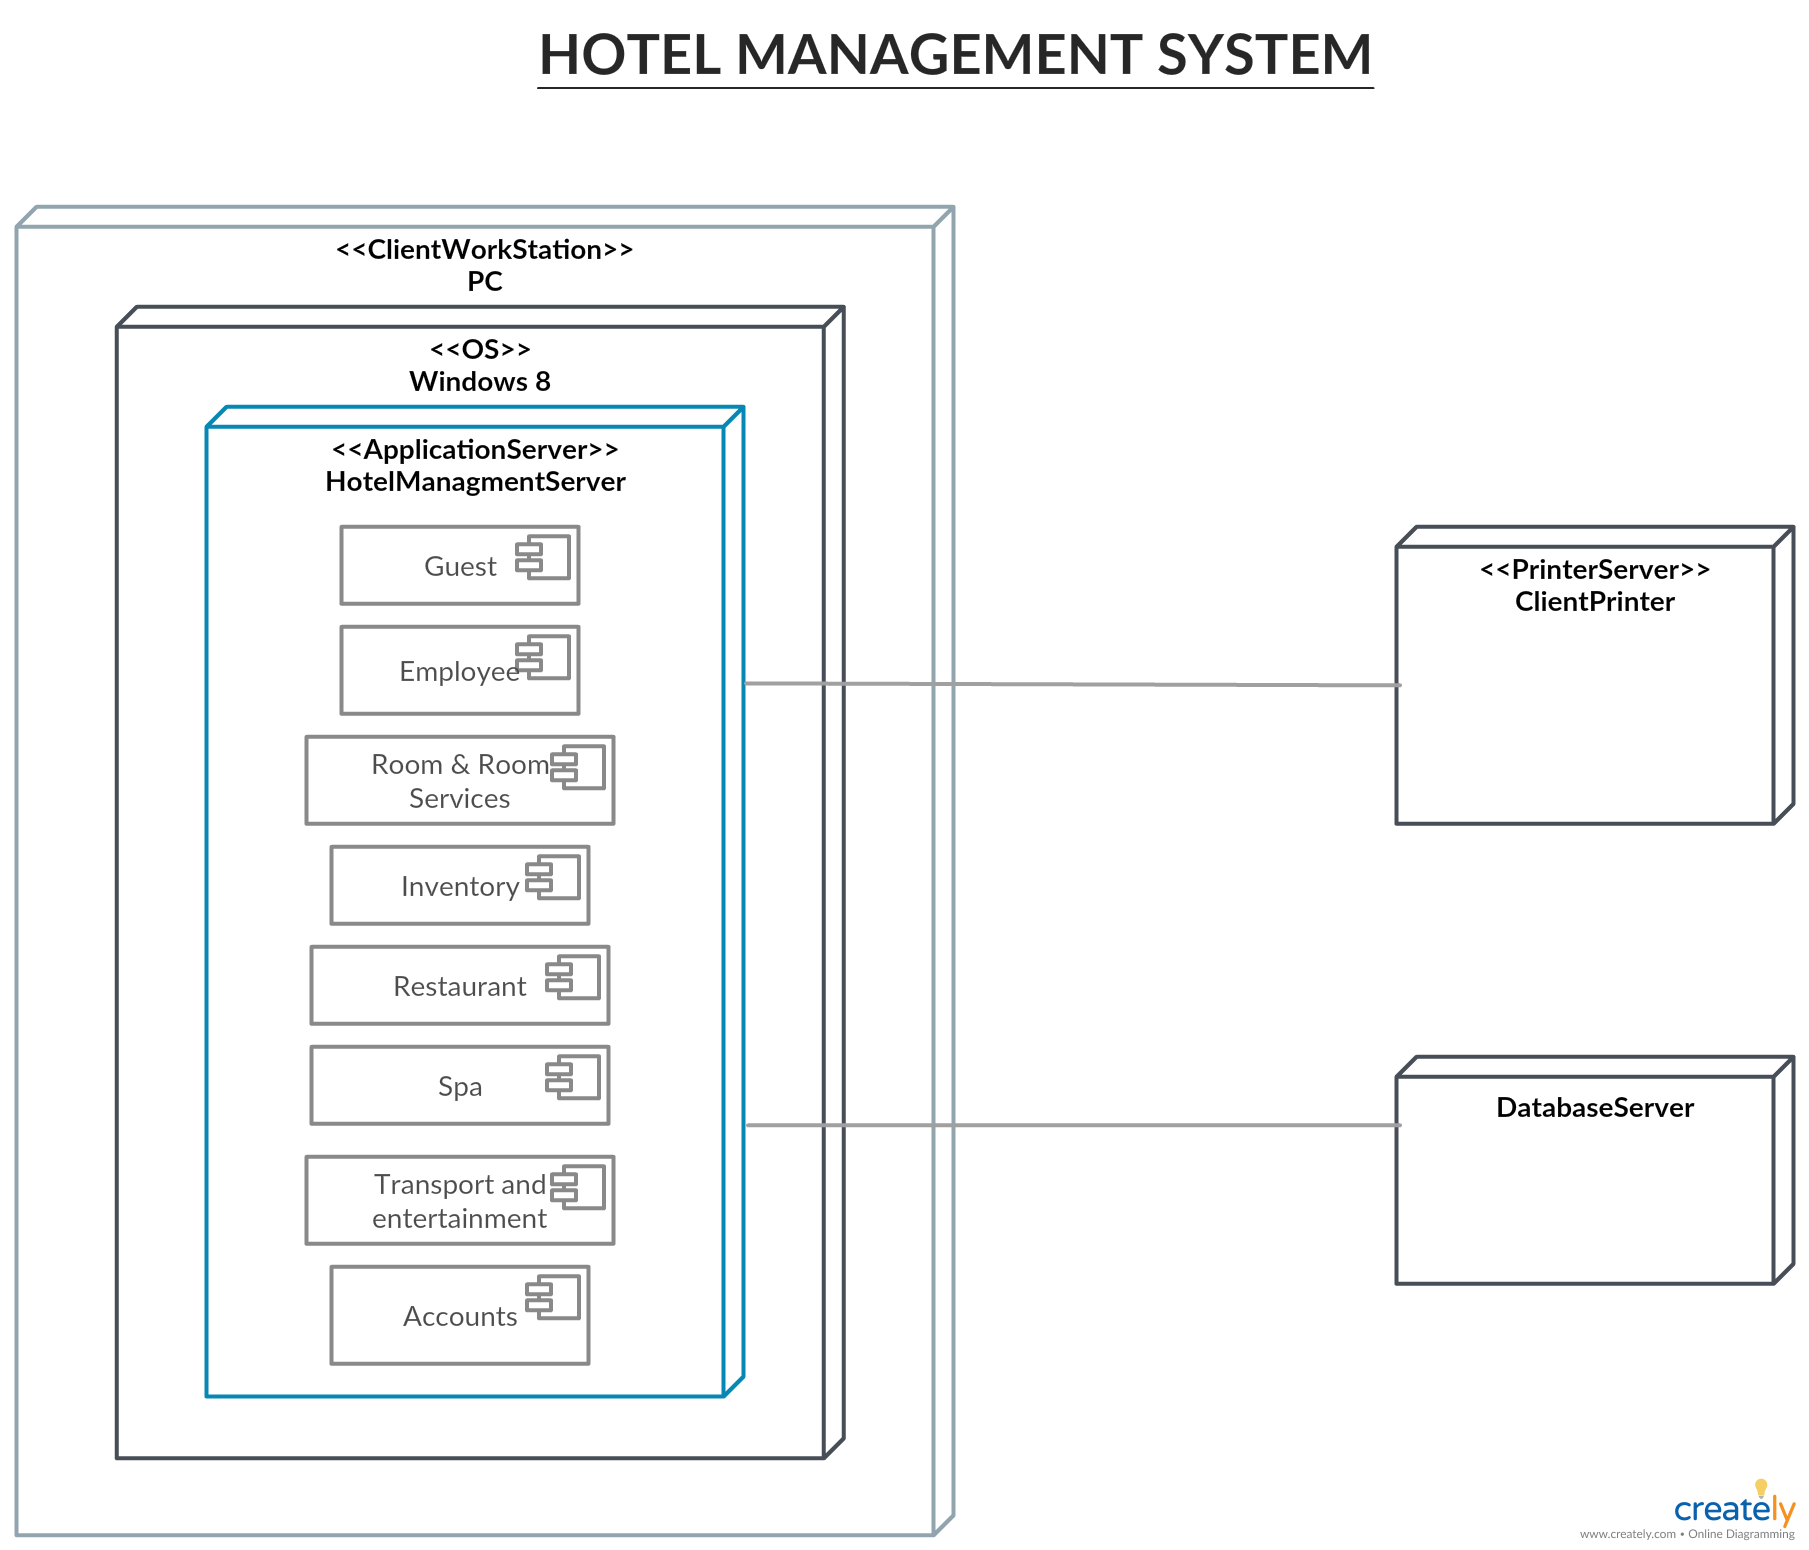 Deployment Diagram Tutorial What Is A Deployment Diagram Hotel Management Diagram Deployment